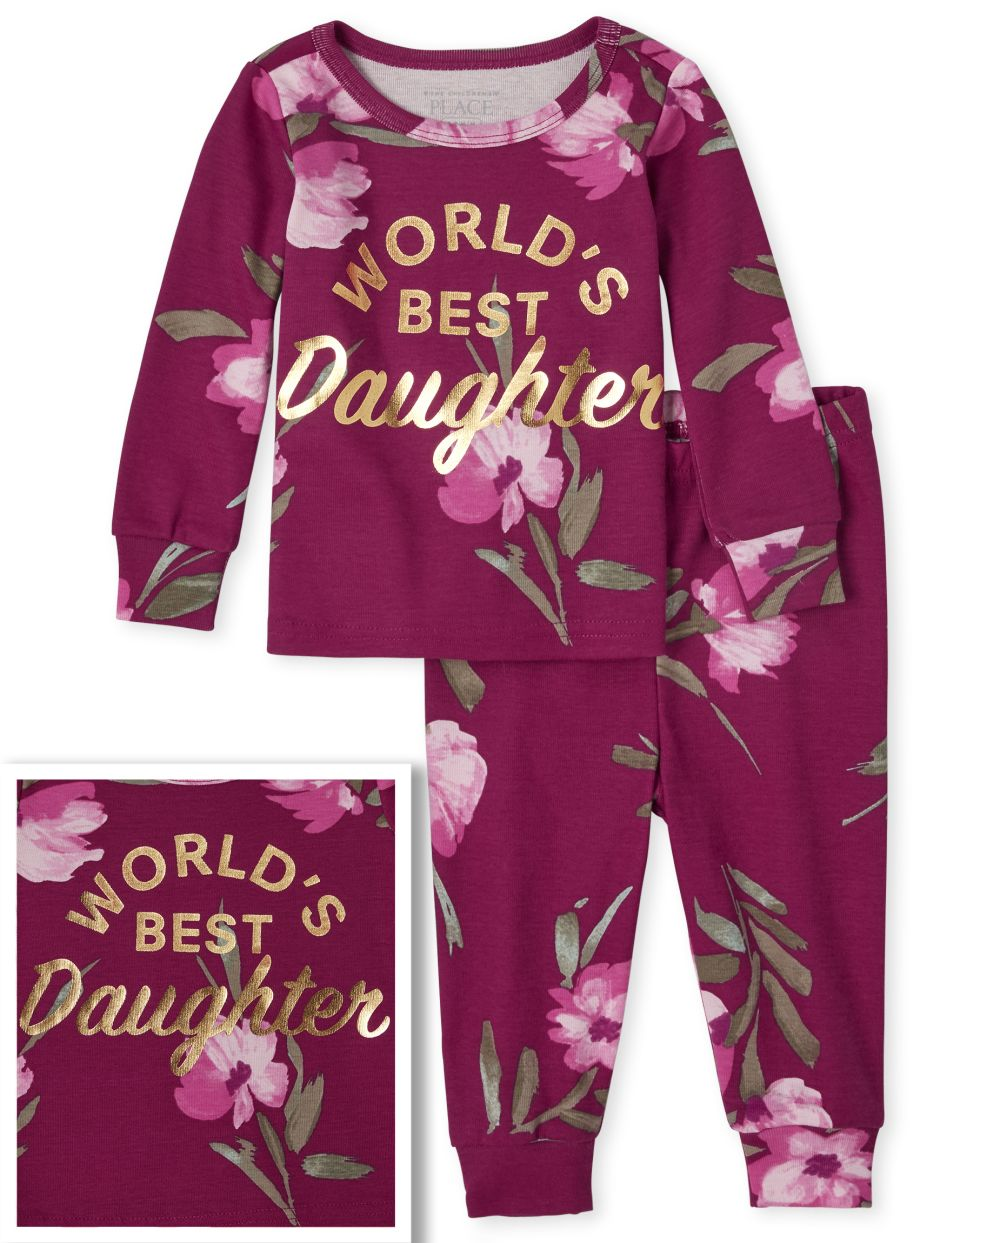 Baby And Toddler Girls Mommy And Me Best Matching Snug Fit Cotton Pajamas